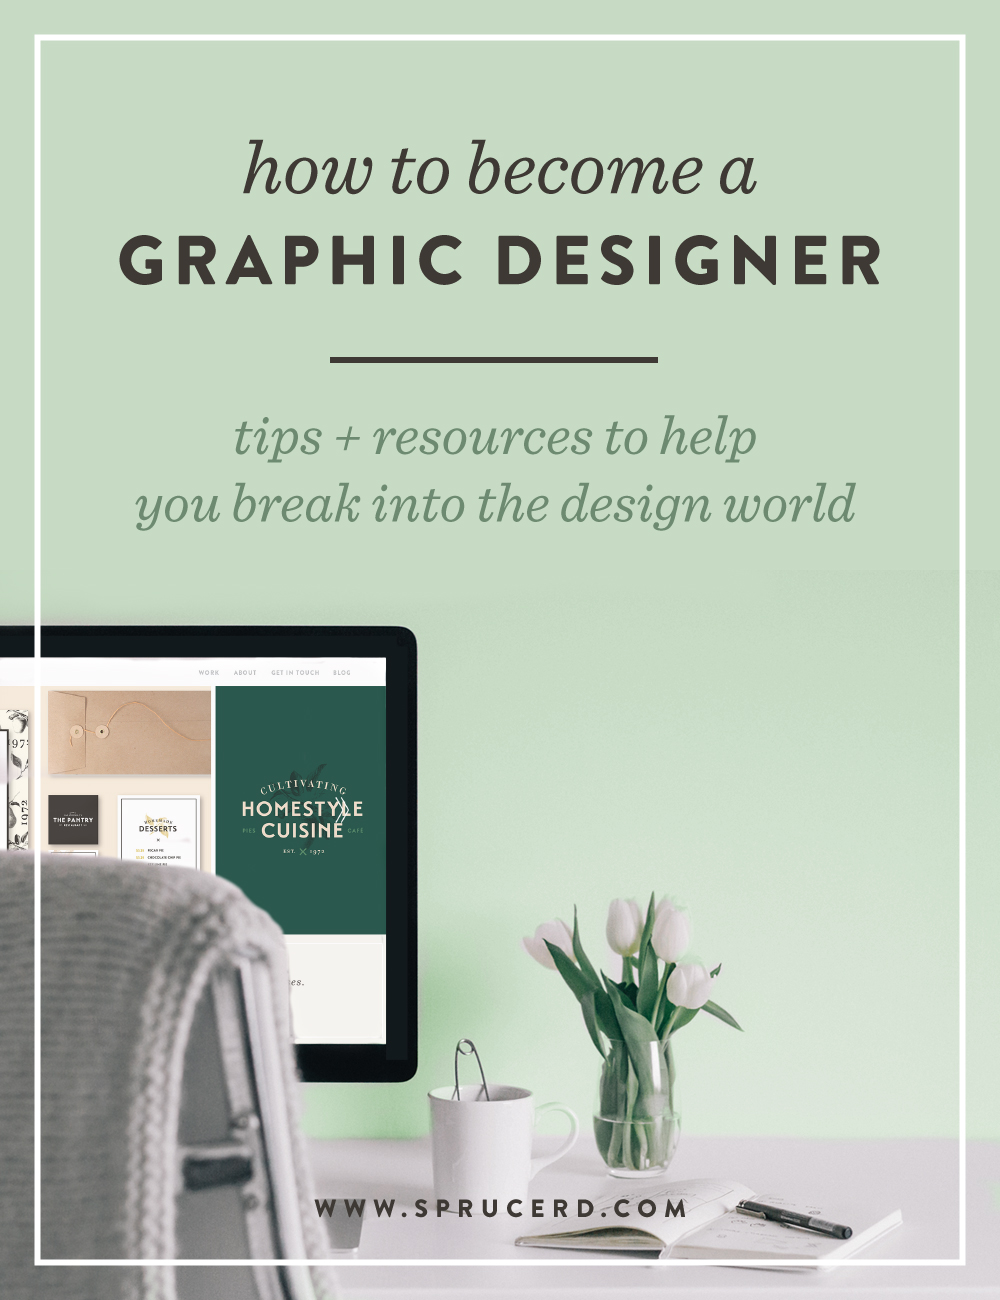 How to become a graphic designer | Spruce Rd. #designresource #graphicdesign #learn #freelance